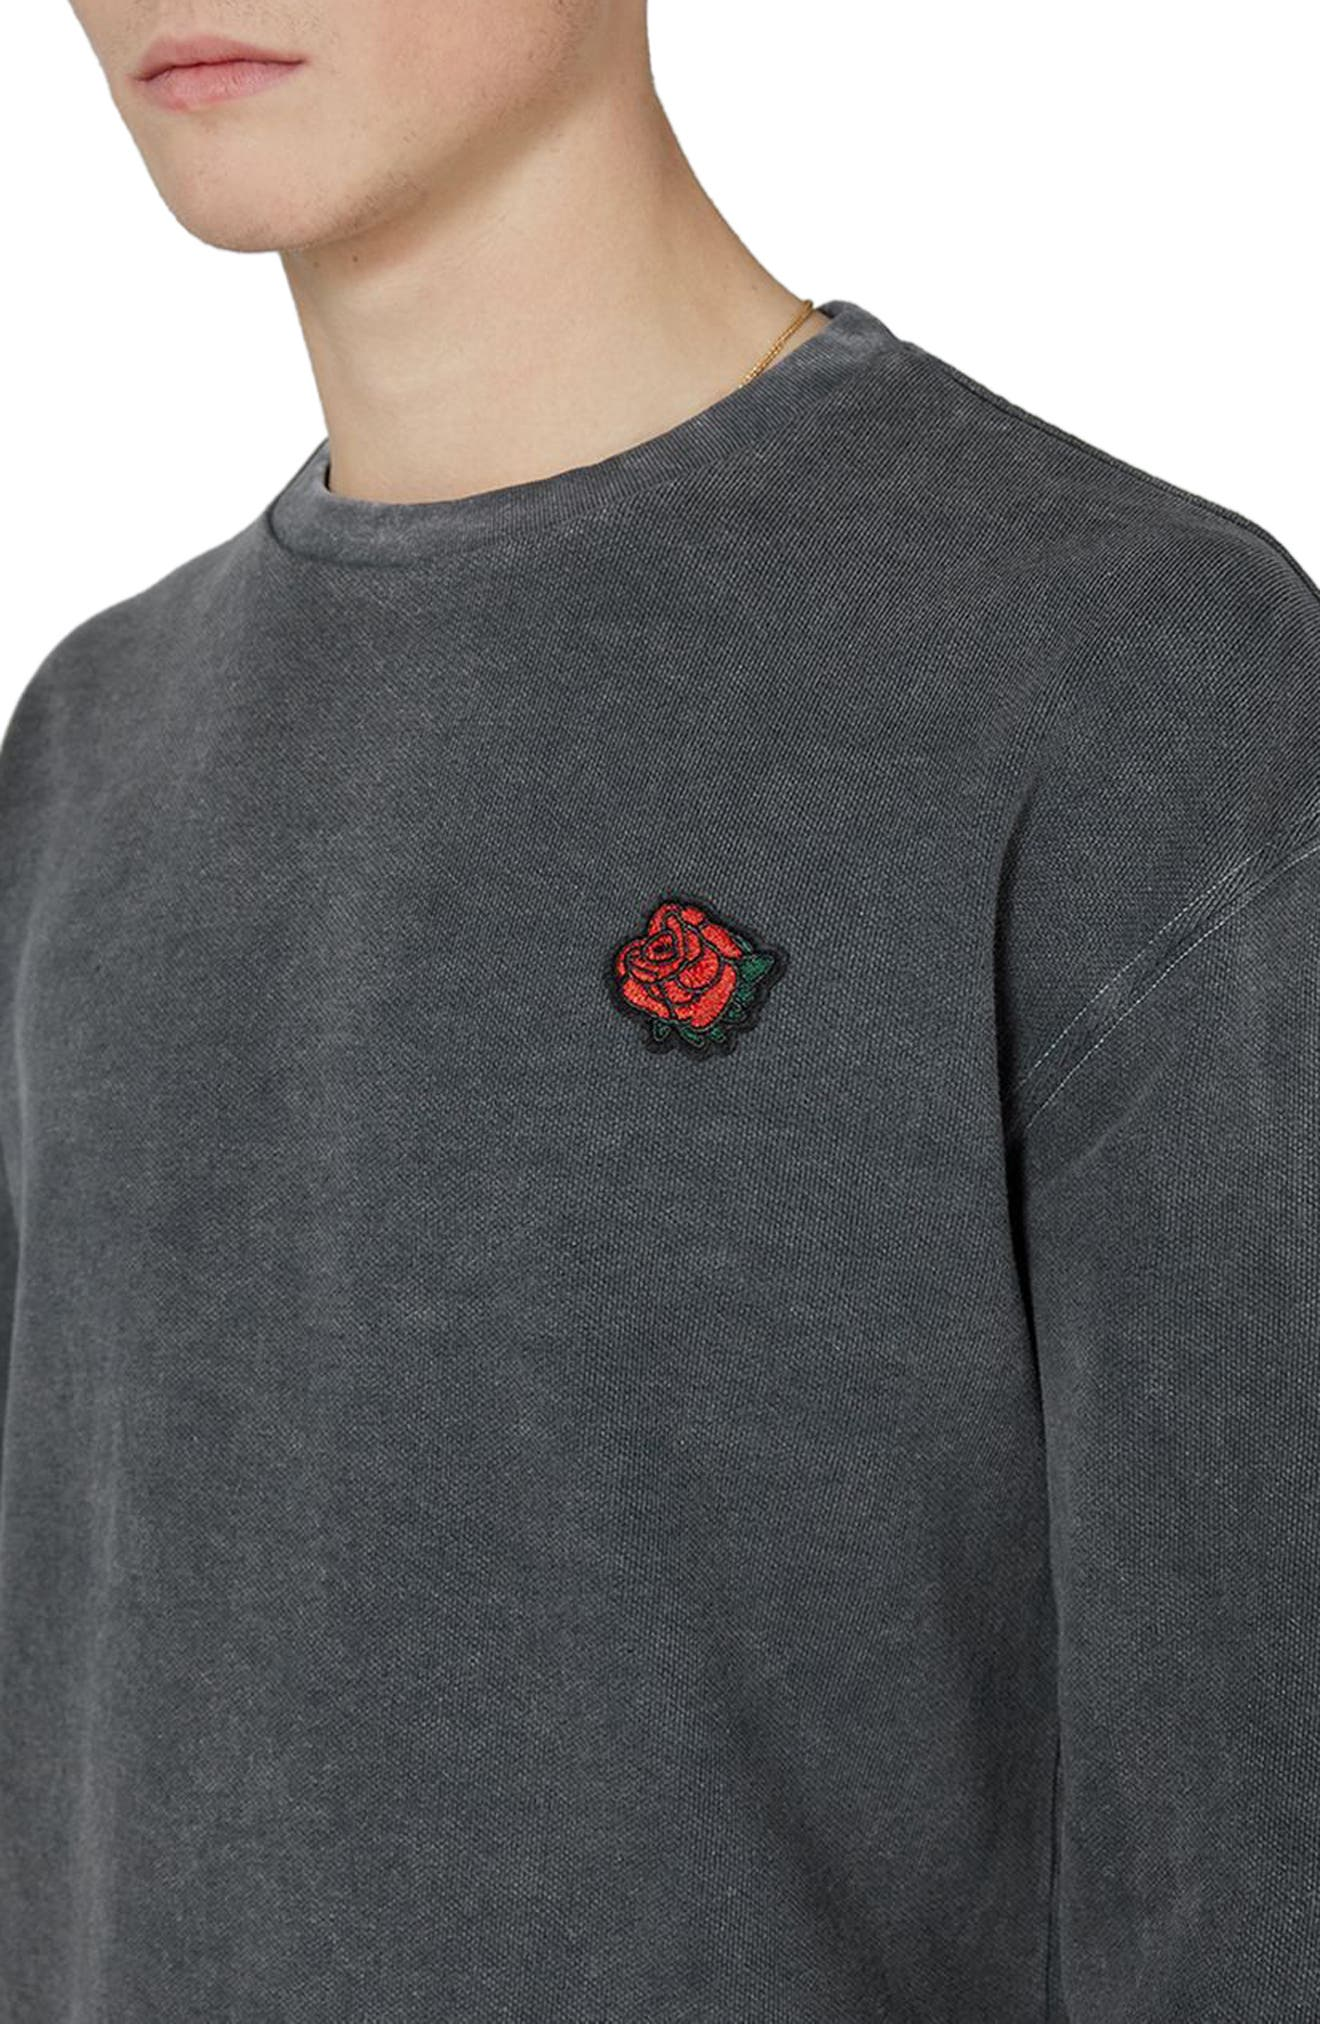 Percy Rose Embroidered Sweatshirt,                             Alternate thumbnail 3, color,                             020